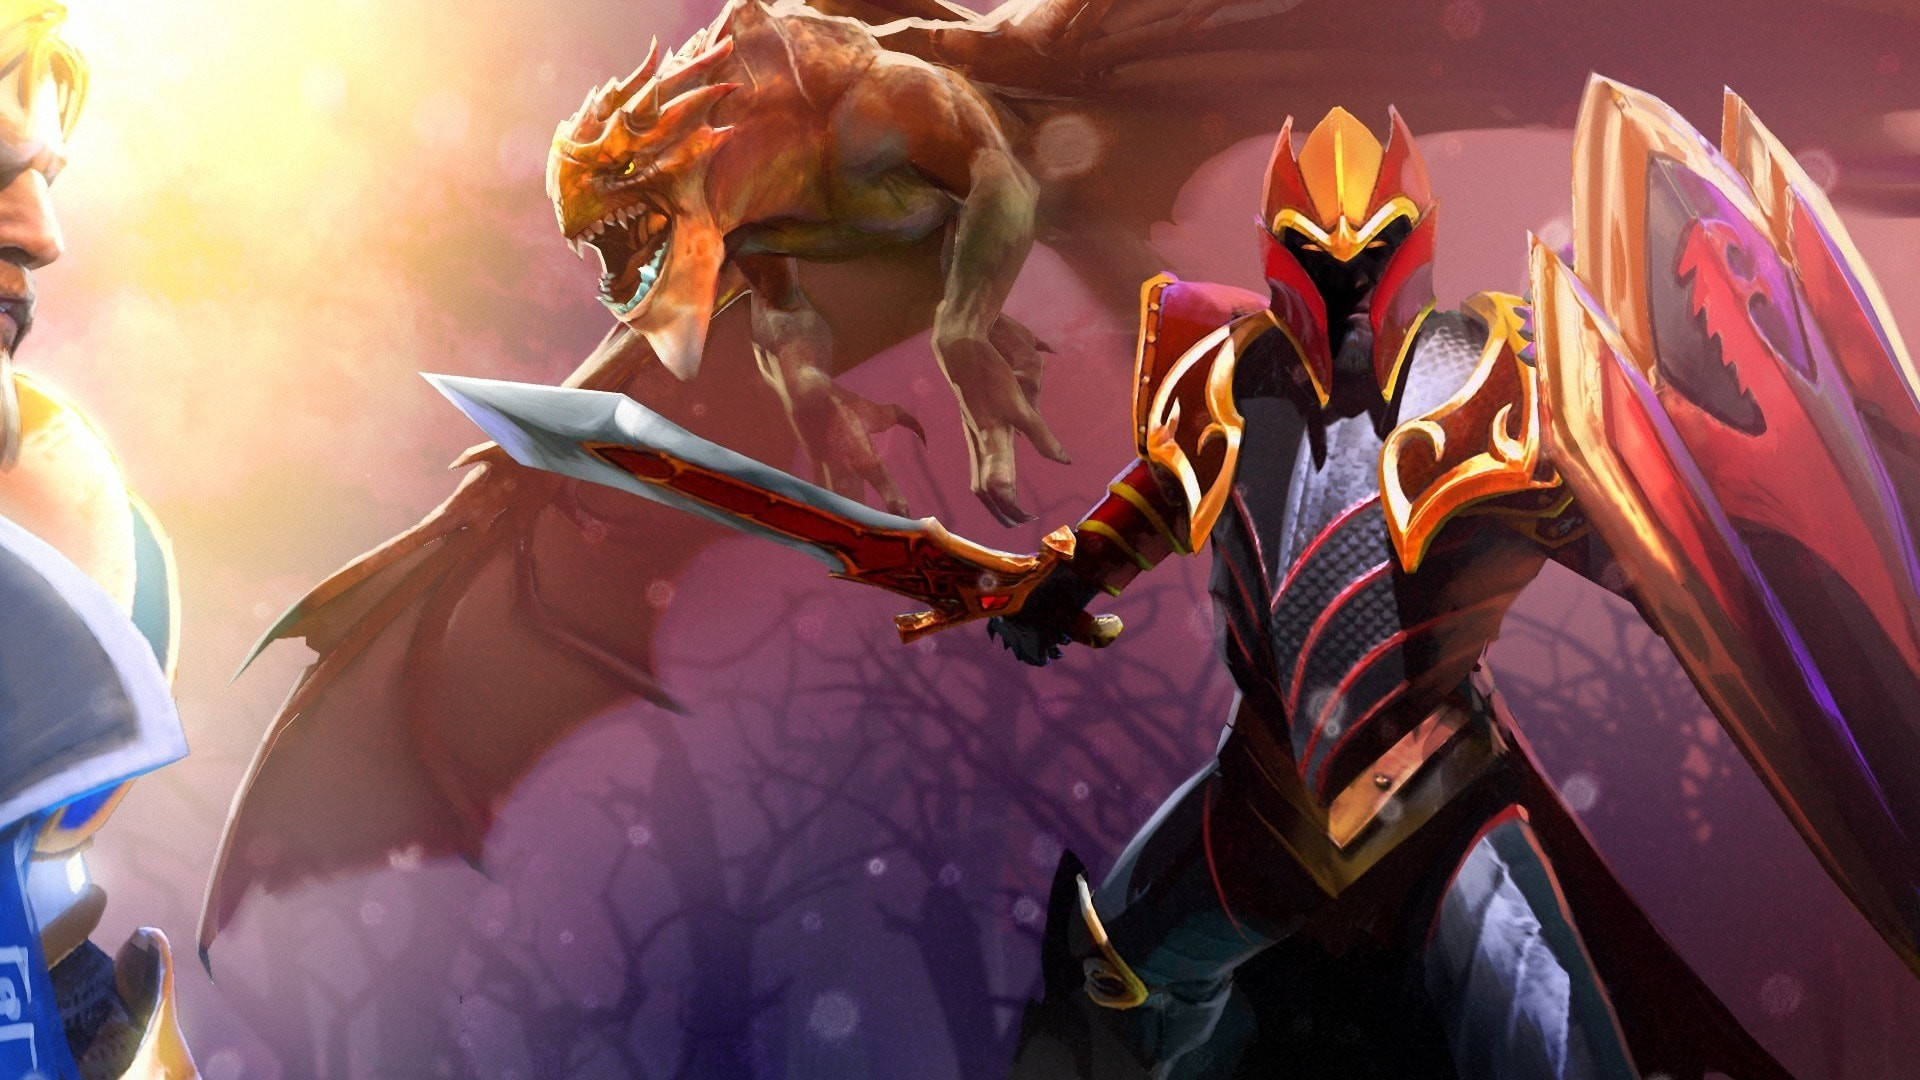 Dota 2 Dragon Knight Wallpapers Images with High Definition Wallpaper  px 344.12 KB